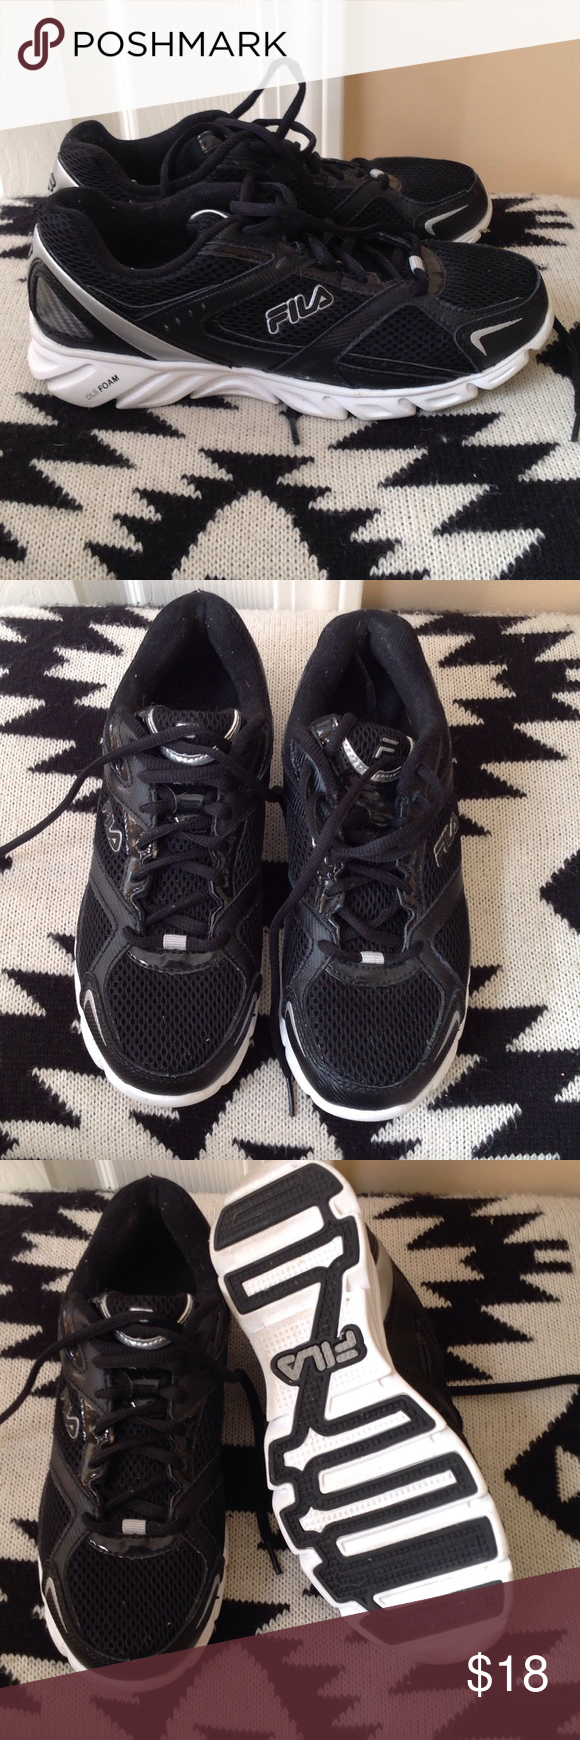 Fila Athletic Shoes Black/white/silver, barely worn (see soles) Fila Shoes Athletic Shoes